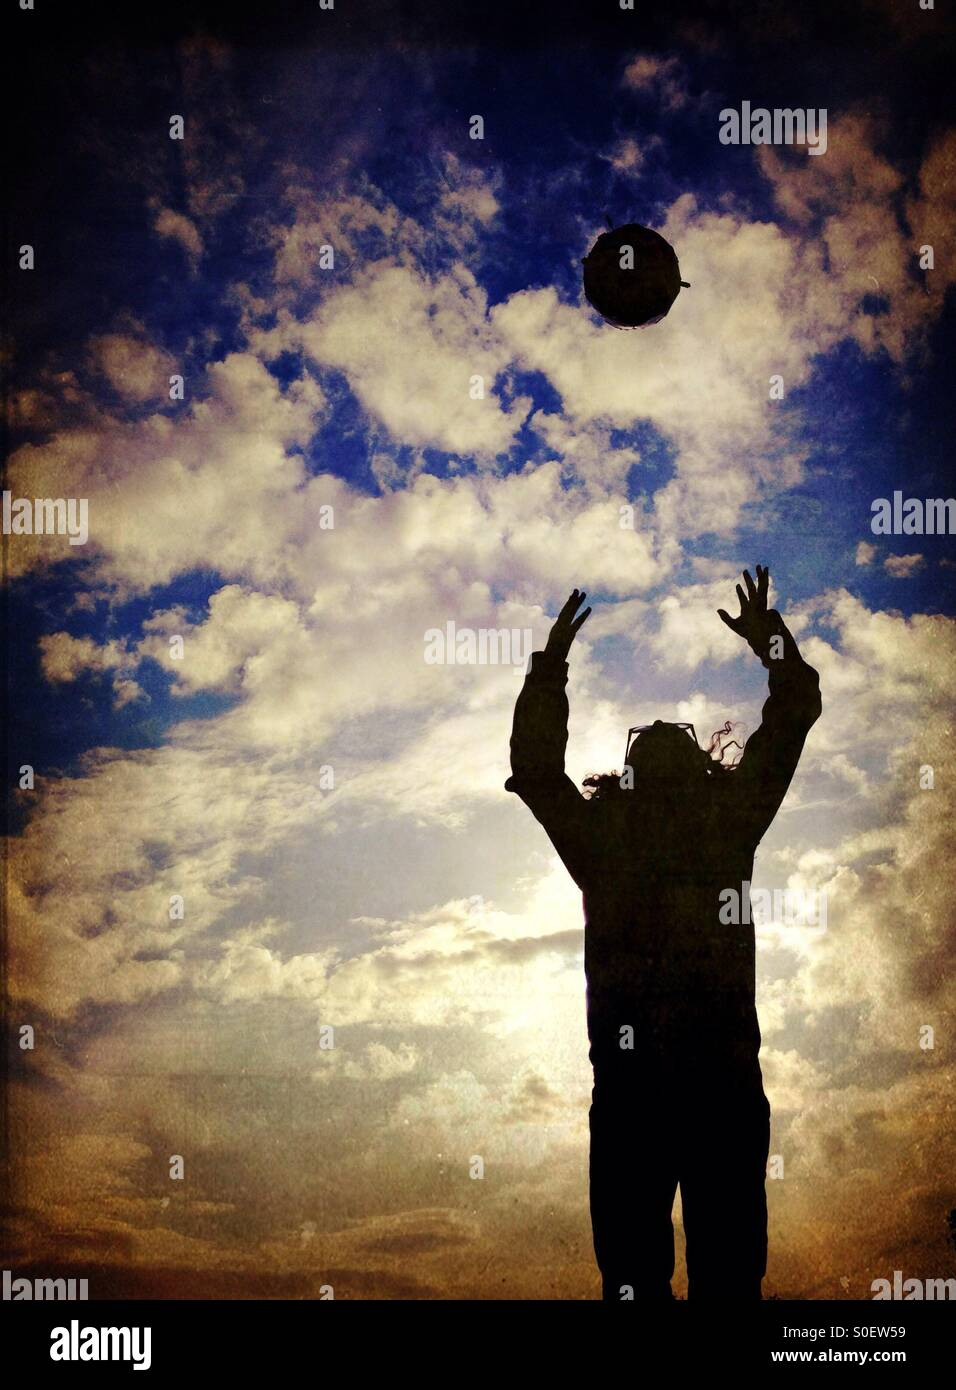 Young girl in silhouette jumping to catch ball - Stock Image